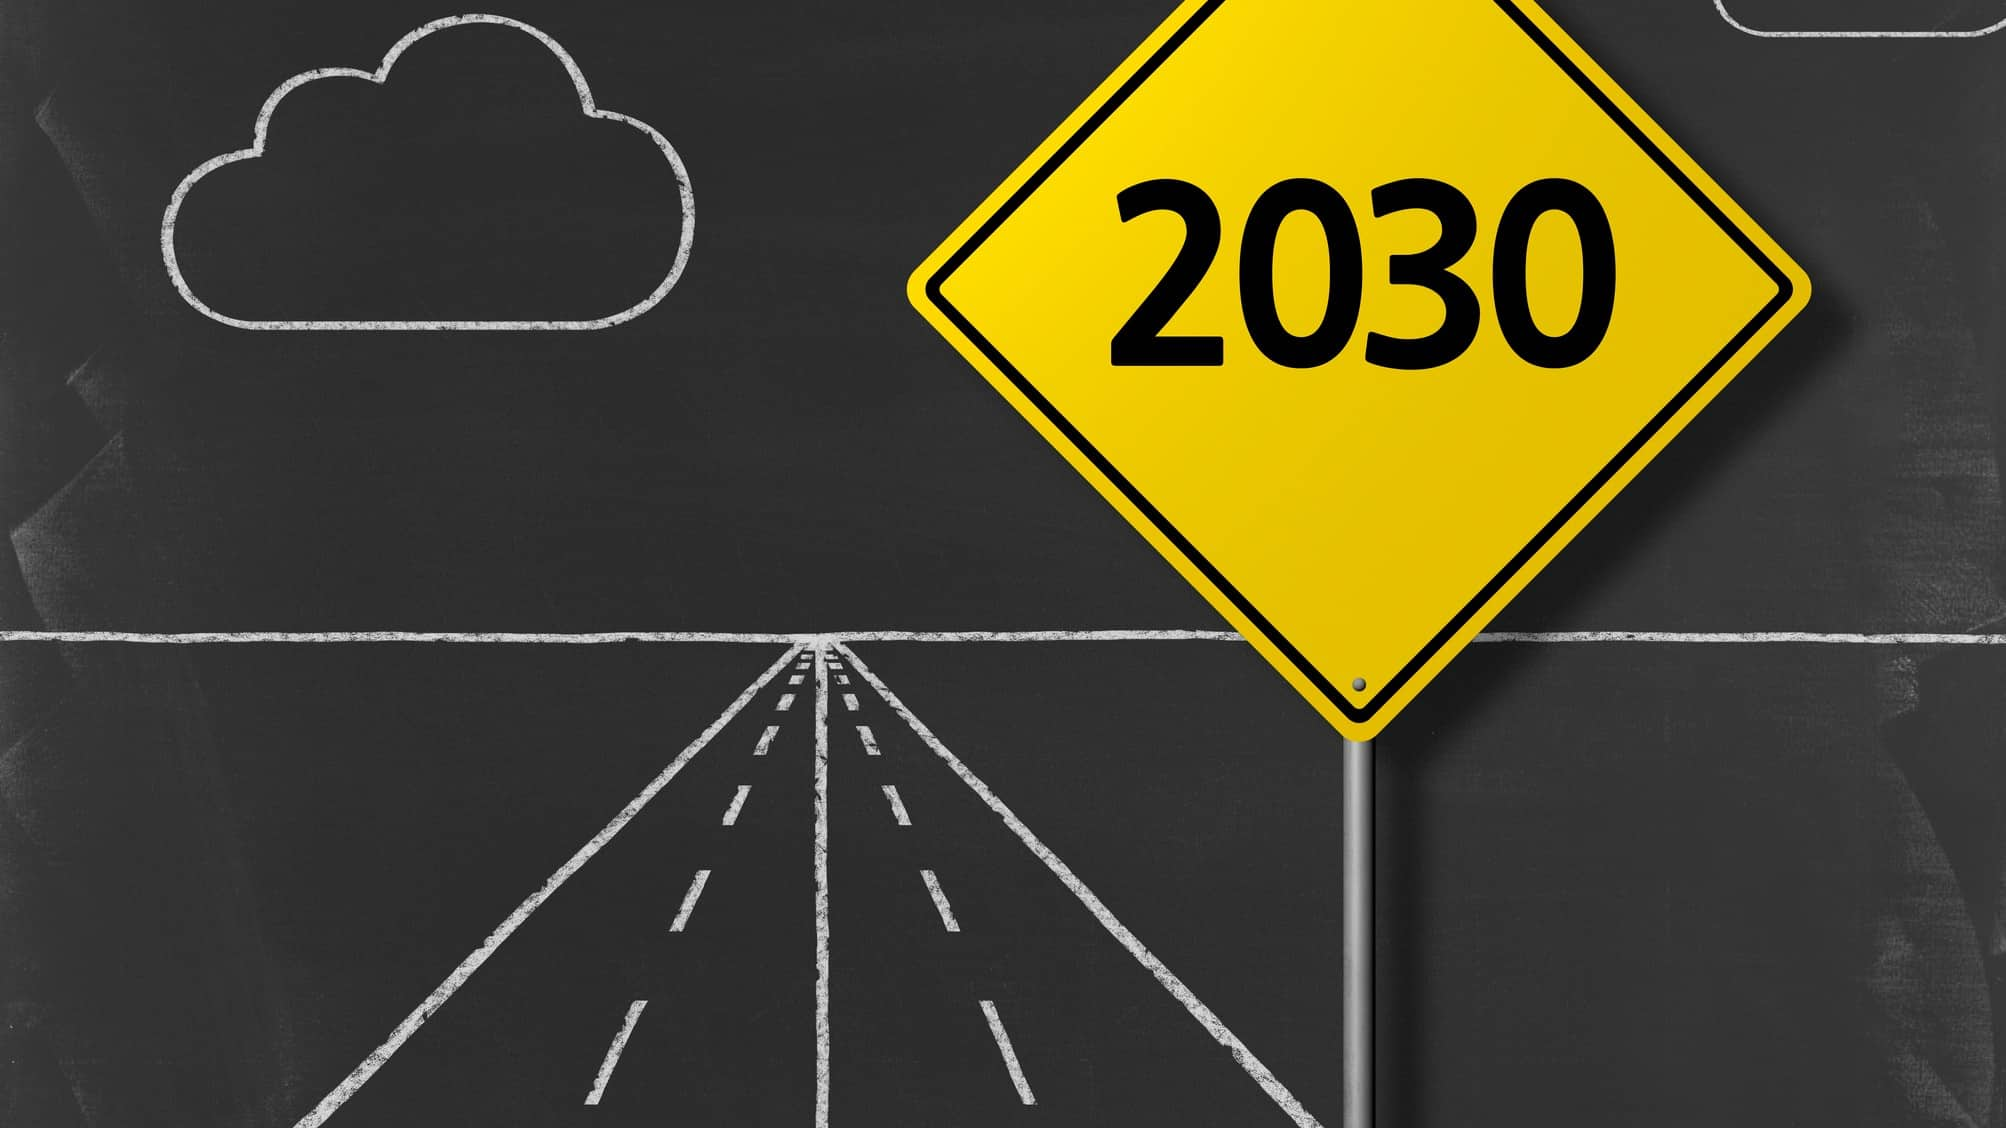 A chalkboard road with a yellow sign saying 2030, representing the way forward for ASX companies